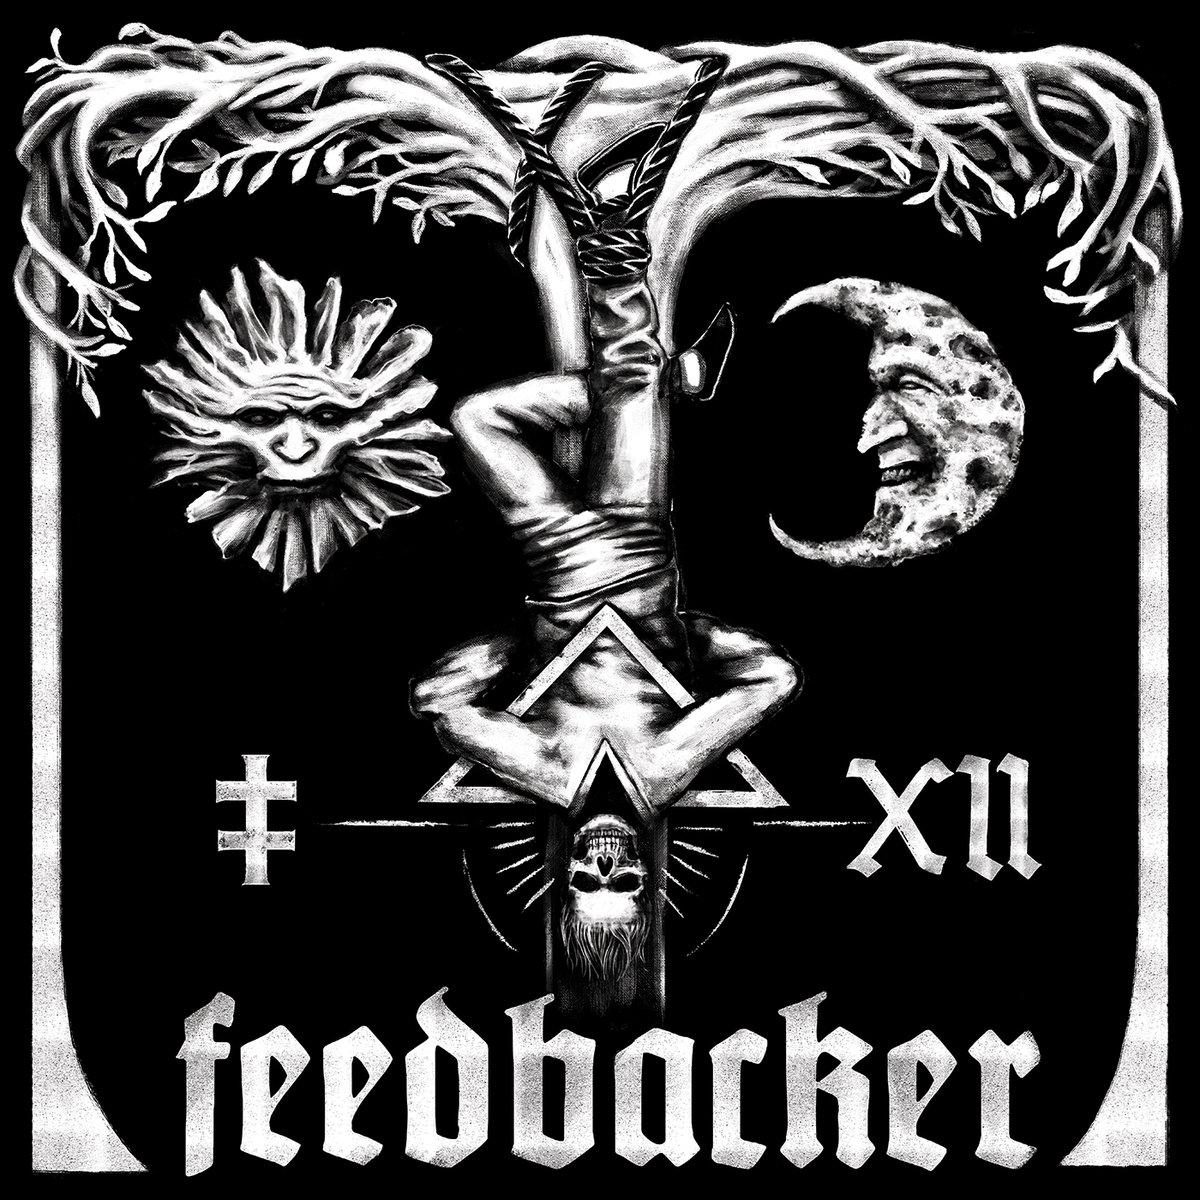 feedbackerxii